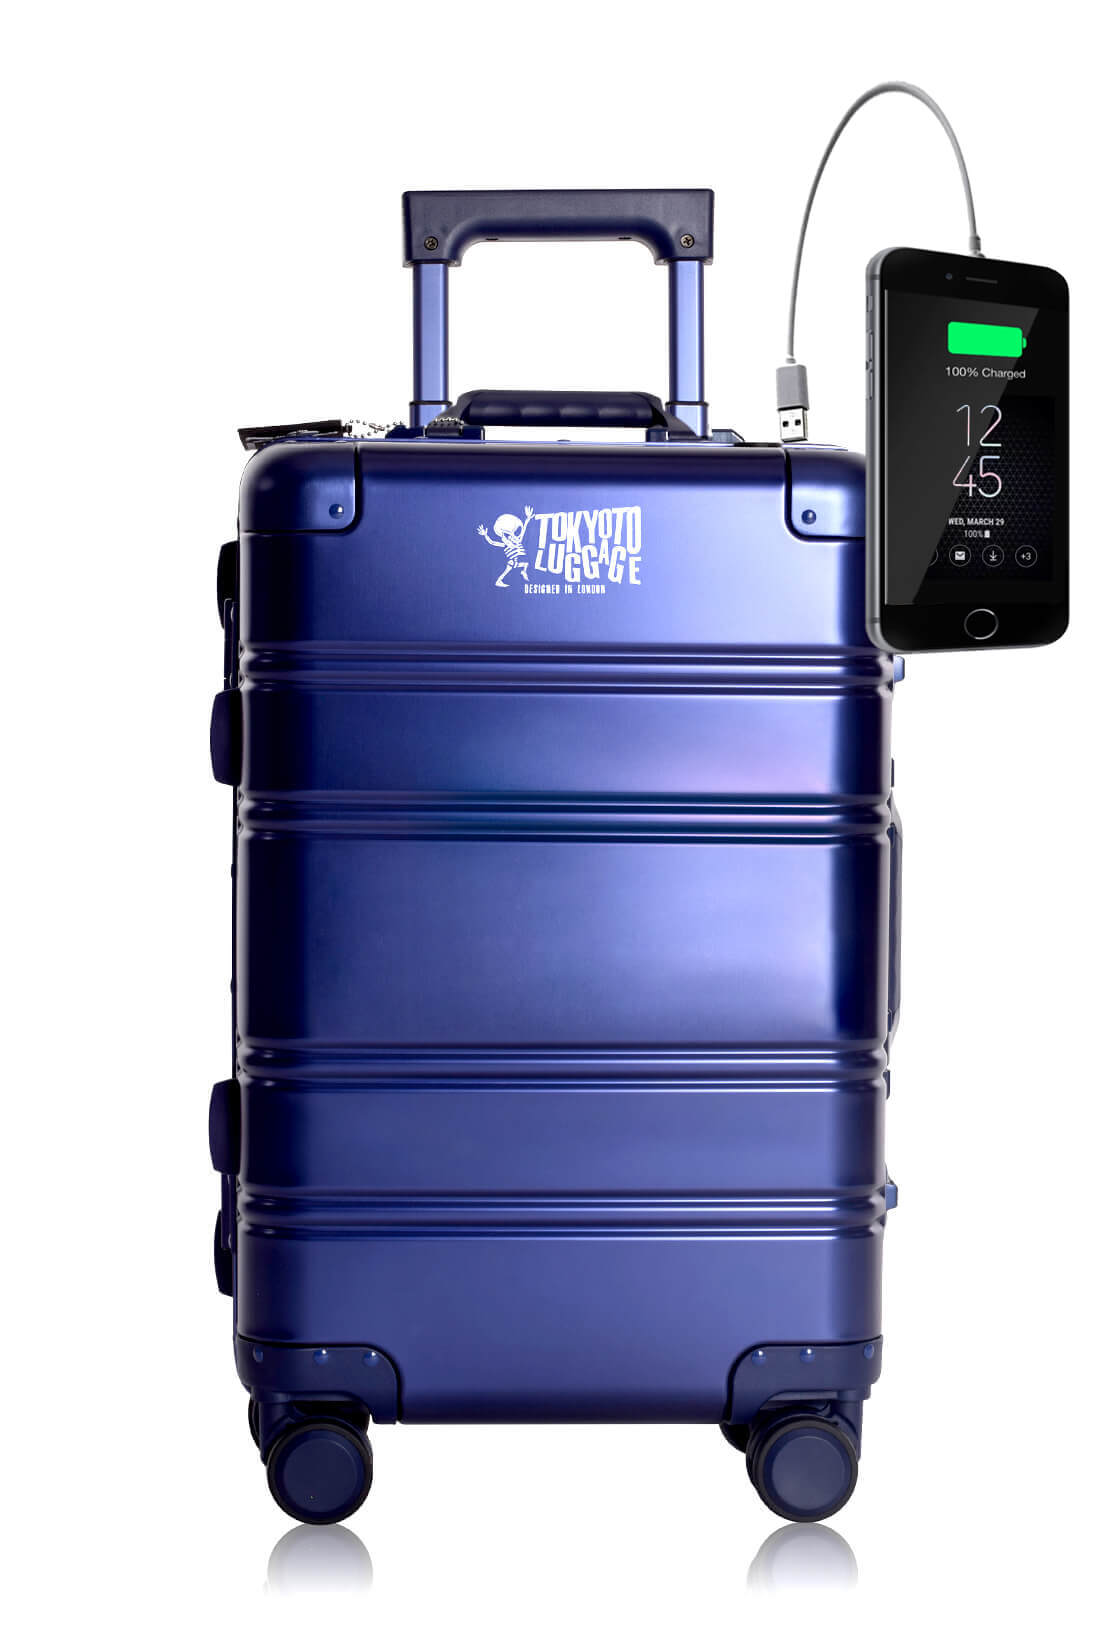 Full Aluminum Suitcase Cabin Size Carry-on Luggage Trolley BLUE SMALL LOGO